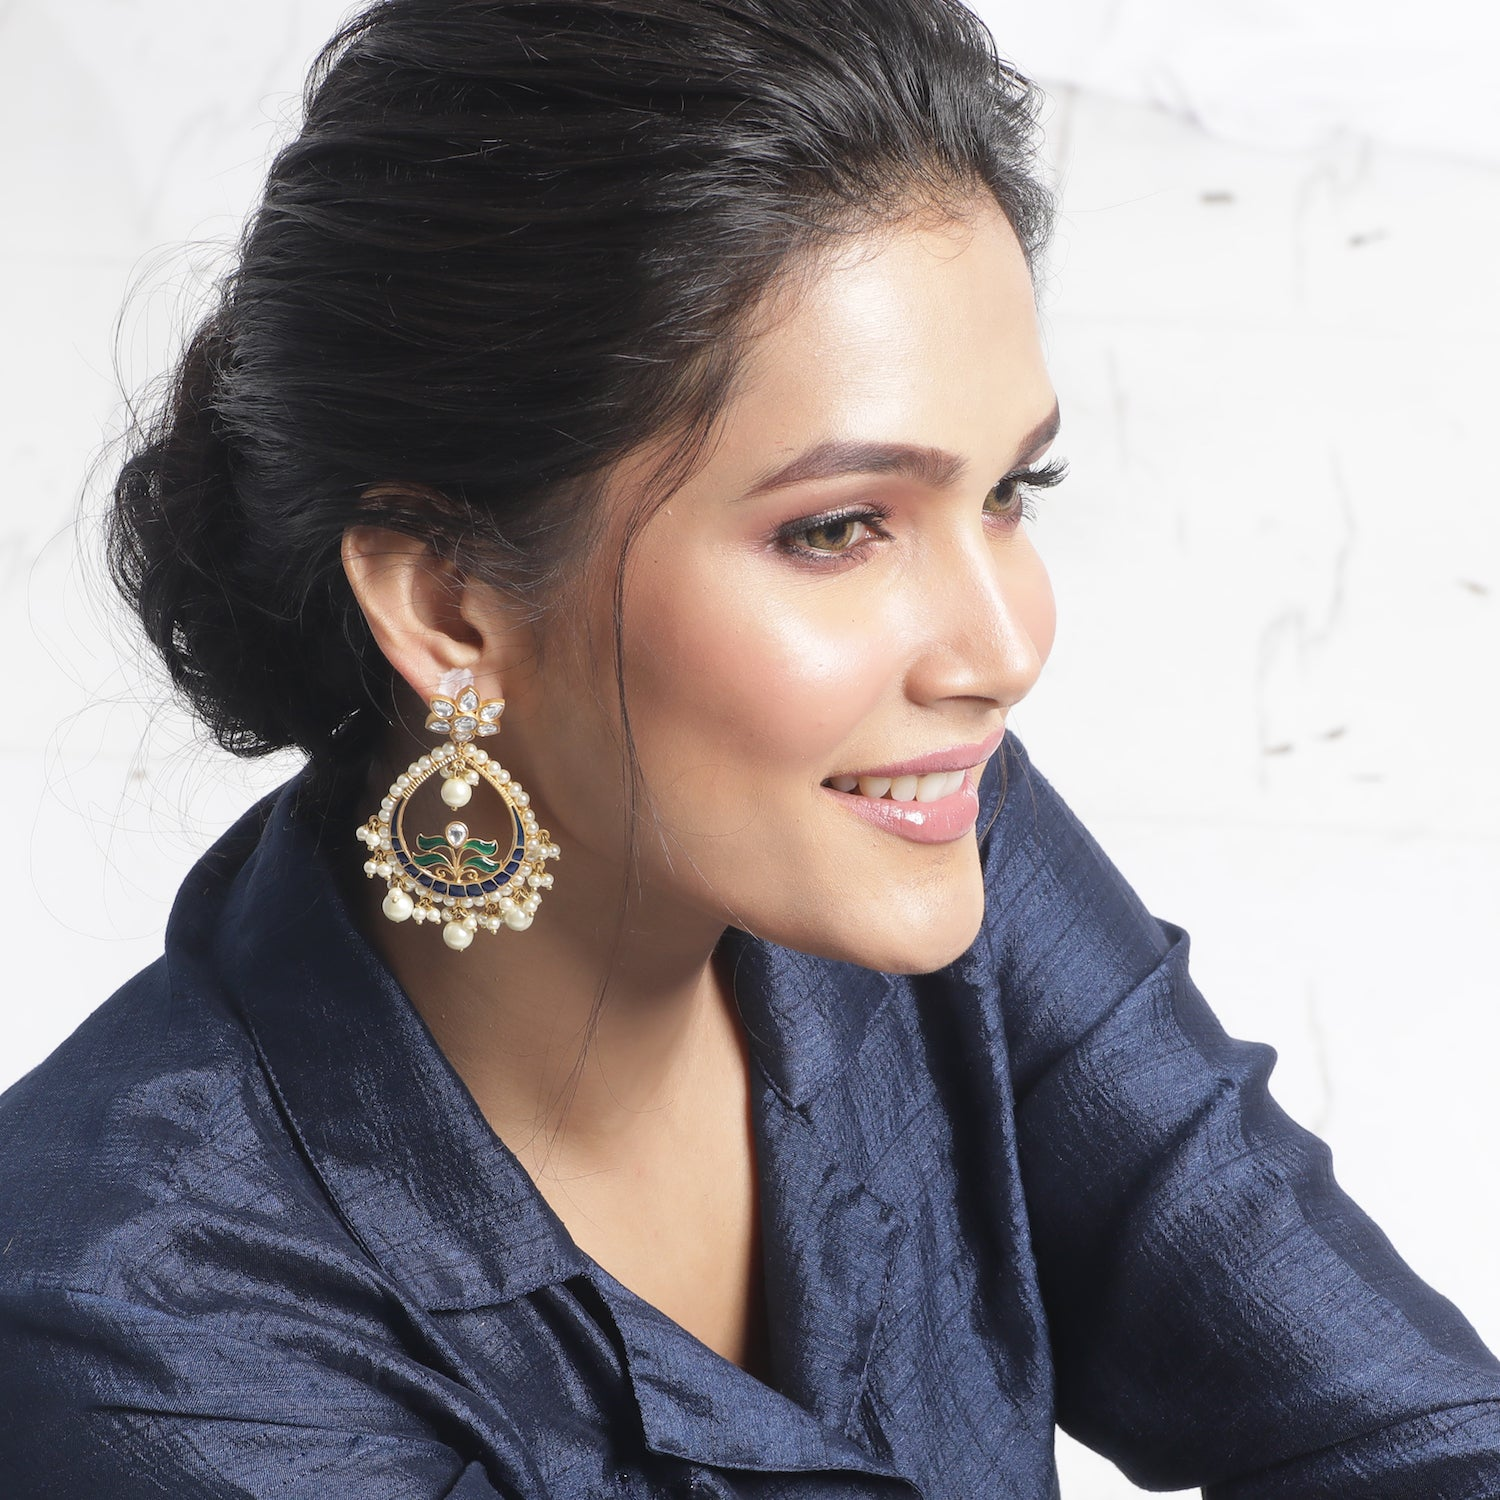 Viditha Kundan Earrings